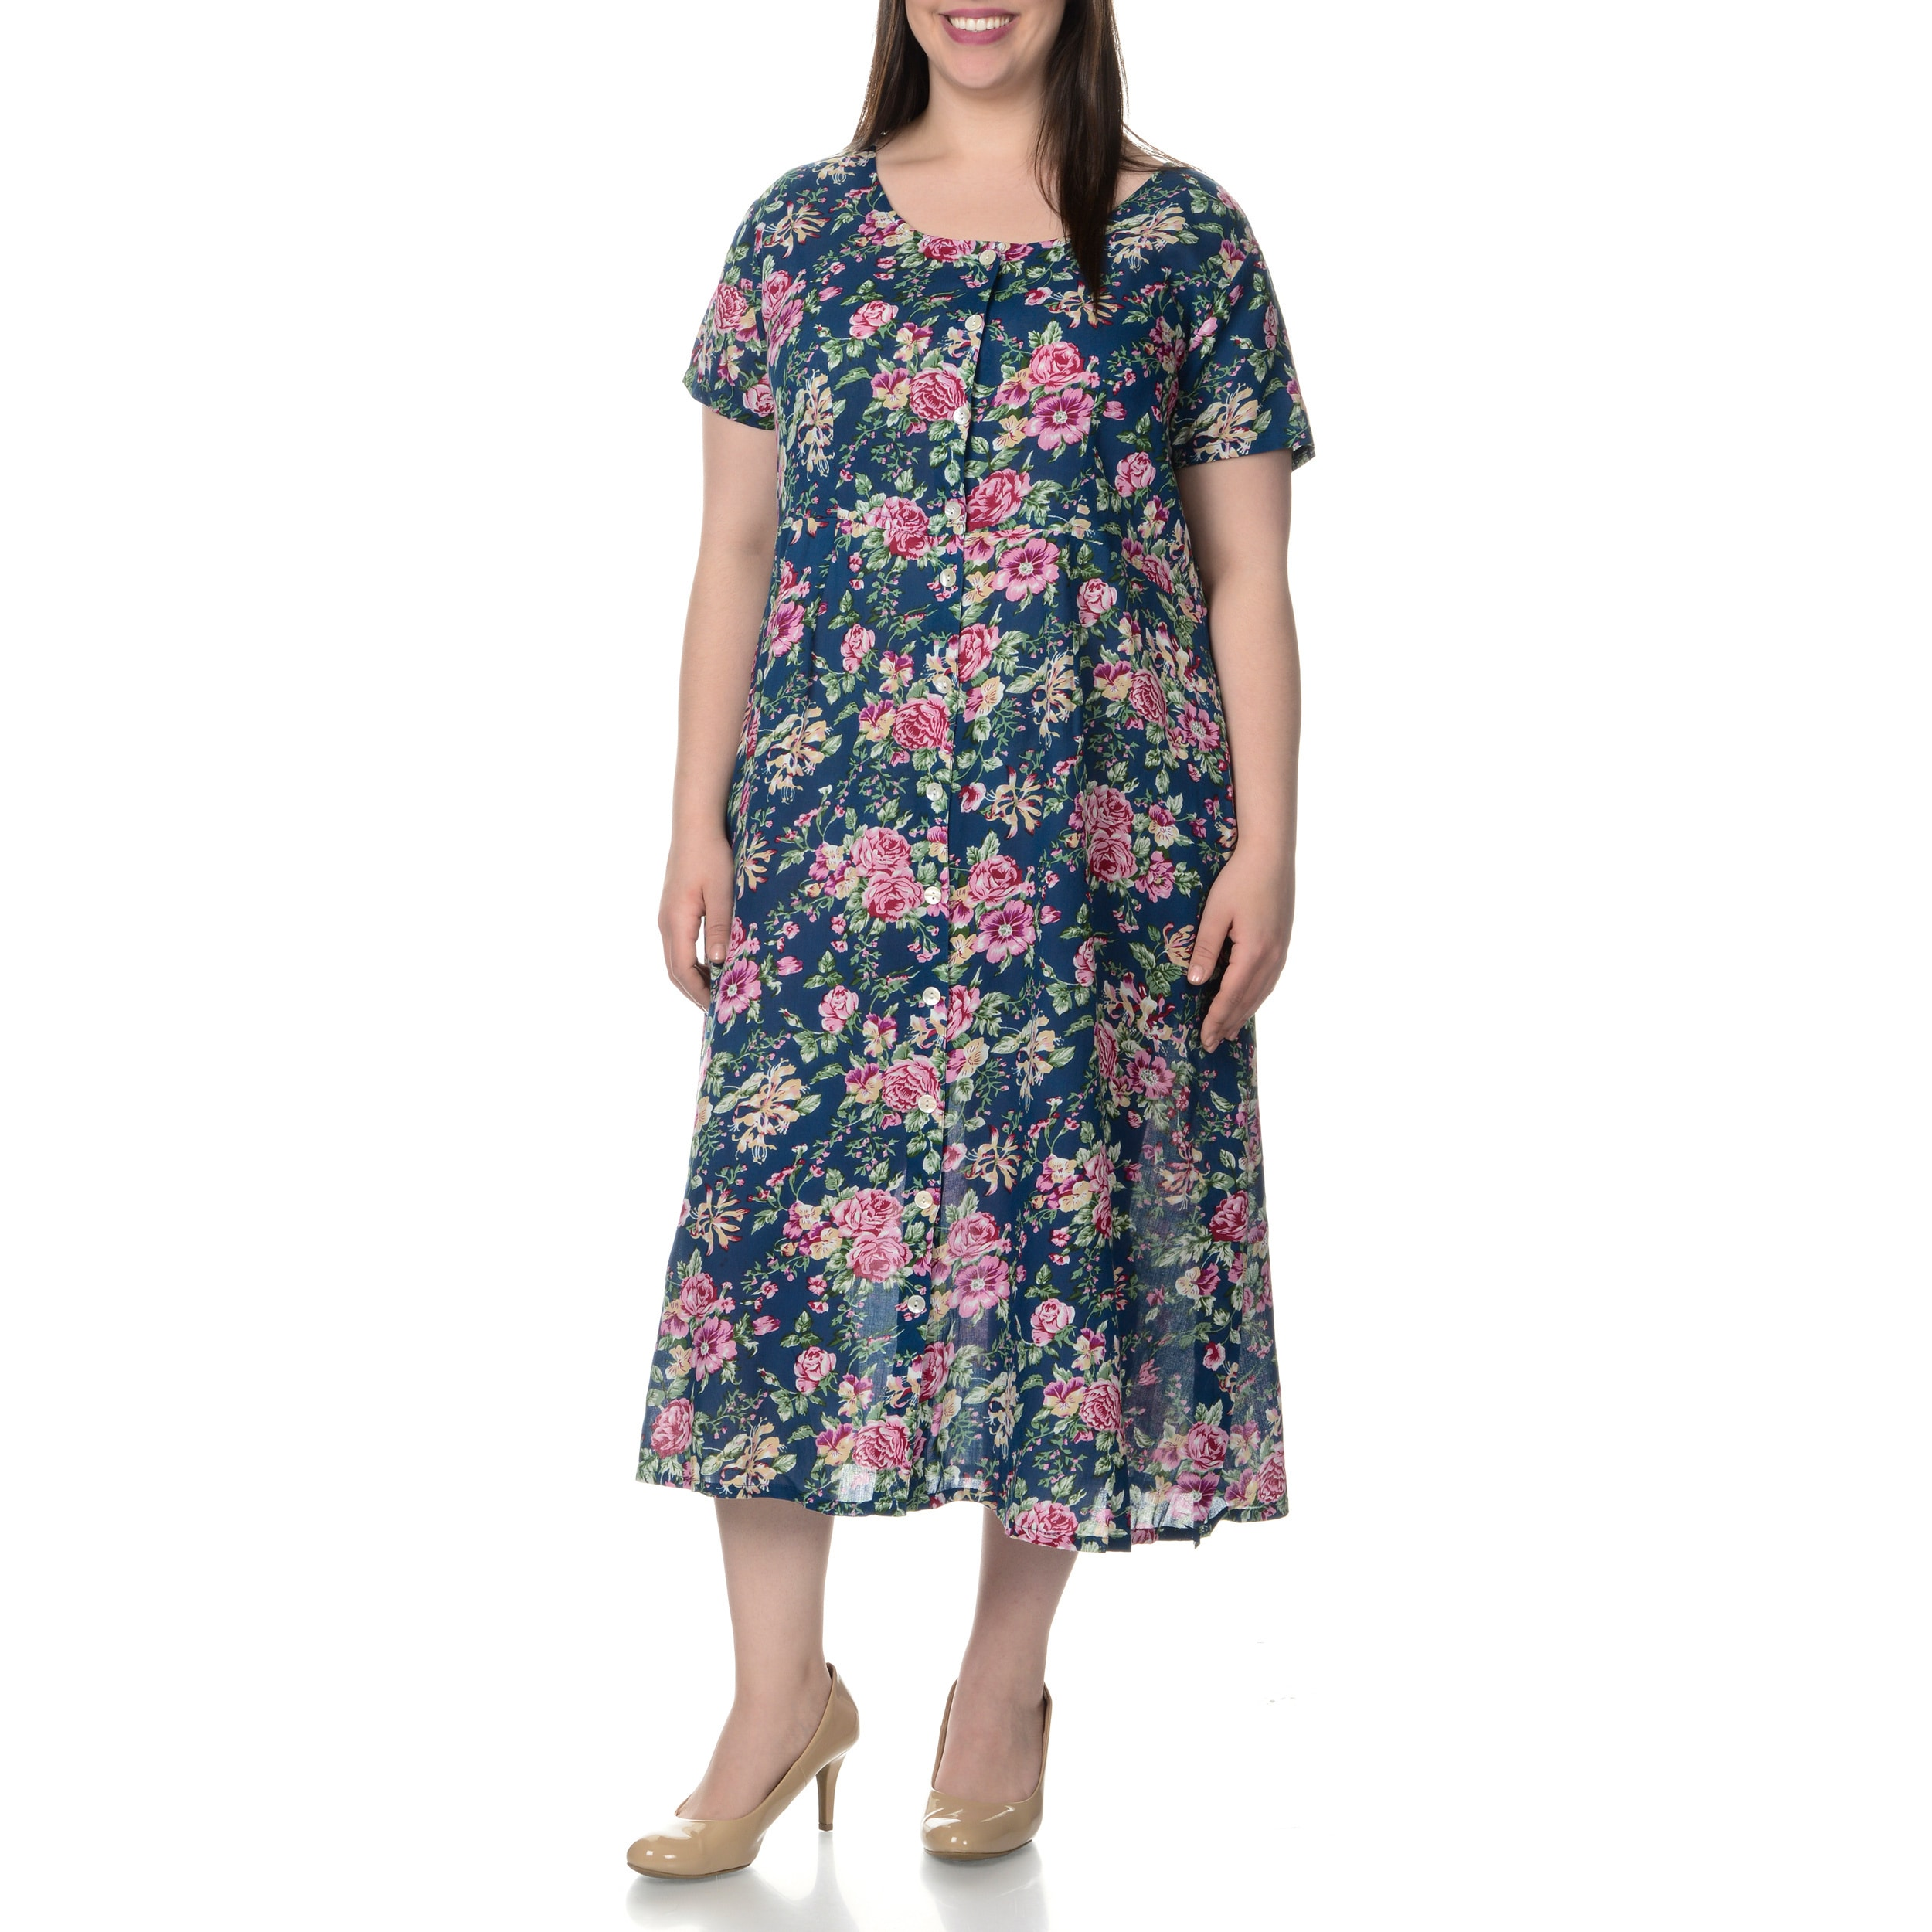 plus size dresses patterns